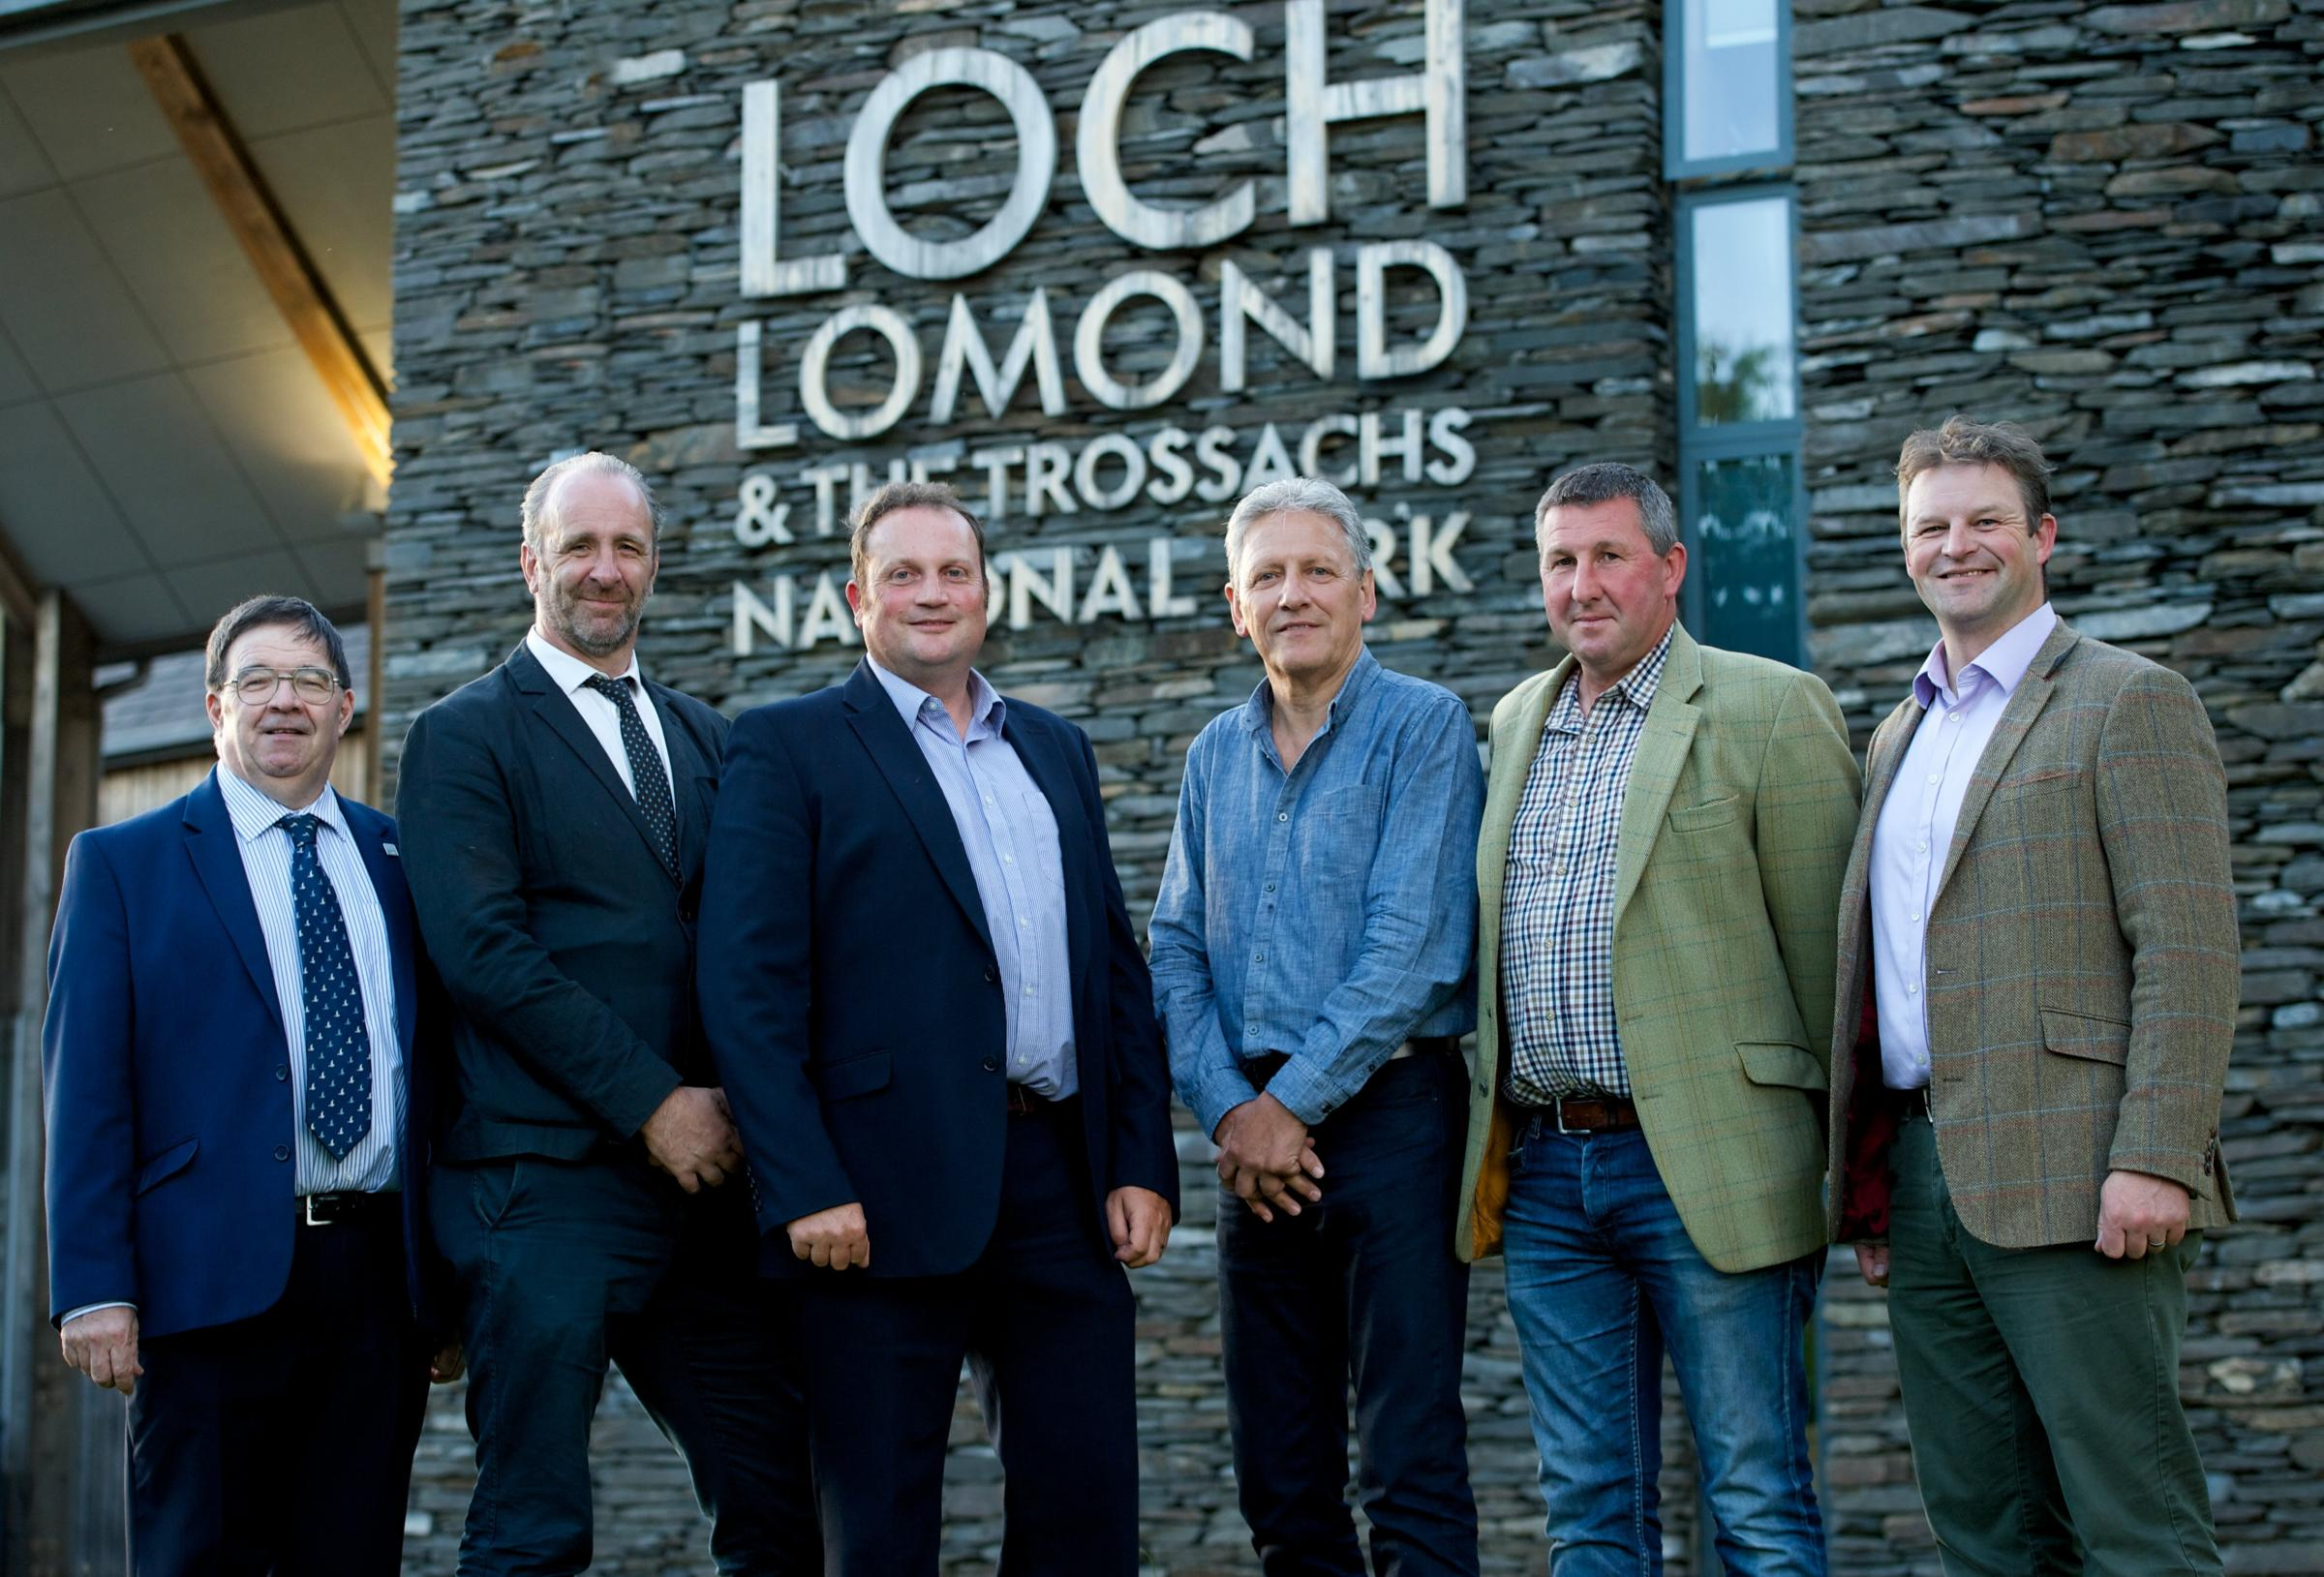 Newly elected National Park Authority Board members with Chief Executive Gordon Watson and Convener James Stuart. (L-R): Willie Nisbet, Gordon Watson, David McCowan, Bob Darracott, Billy Ronald. Credit: Loch Lomond & The Trossachs National Park Authority.